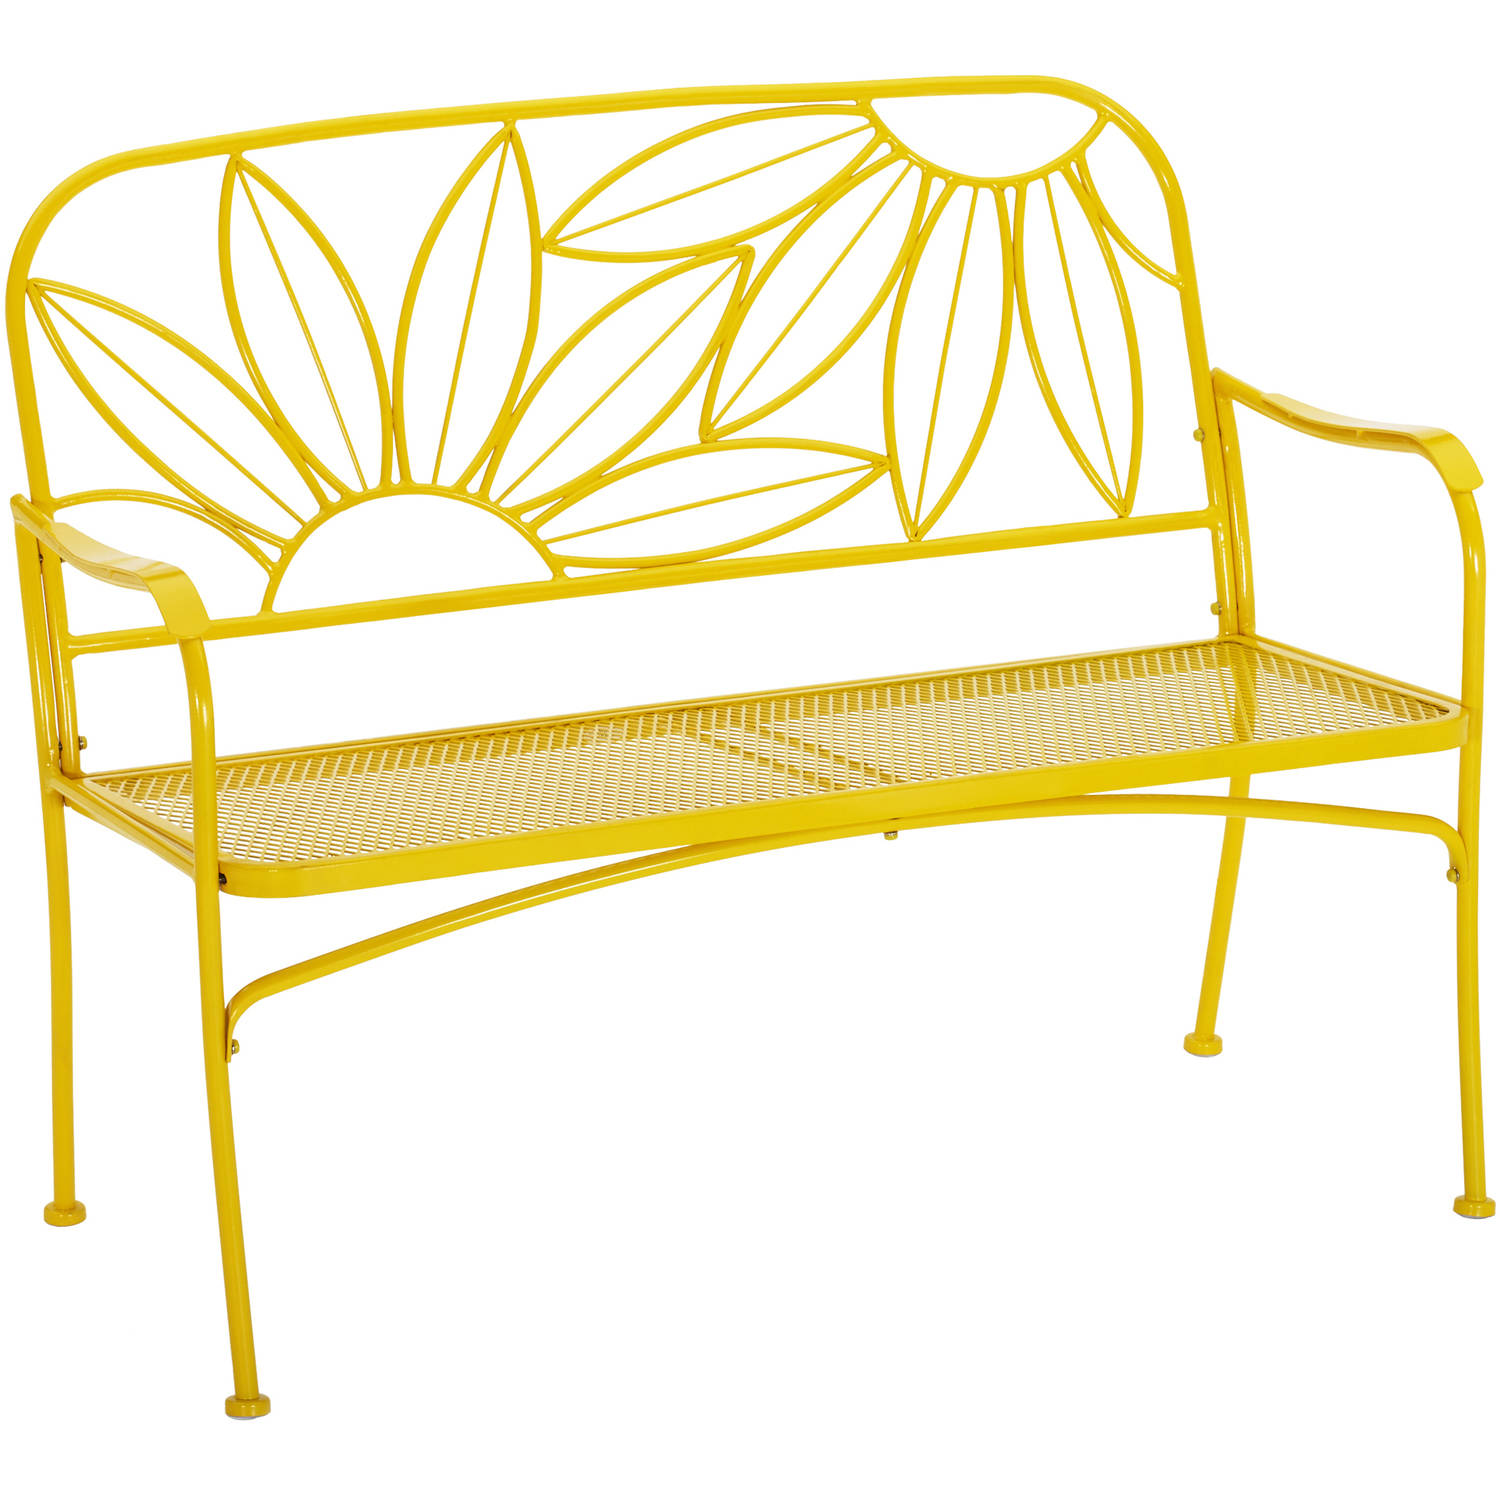 Mainstays Hello Sunny Outdoor Patio Bench, Yellow   Walmart.com